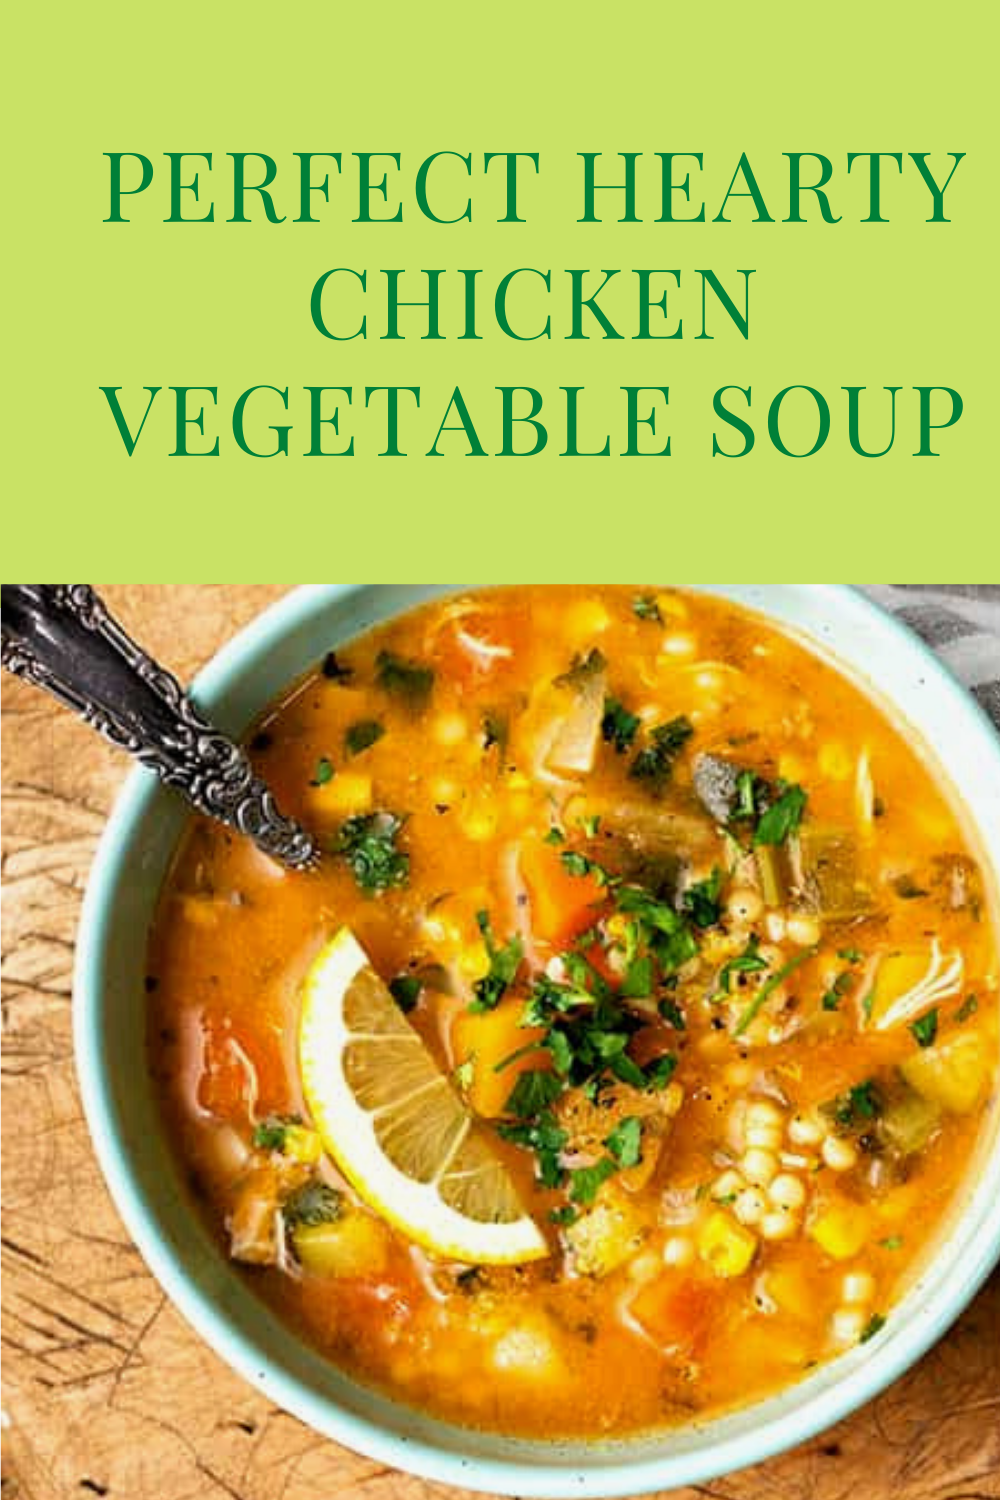 Perfect Hearty Chicken Vegetable Soup